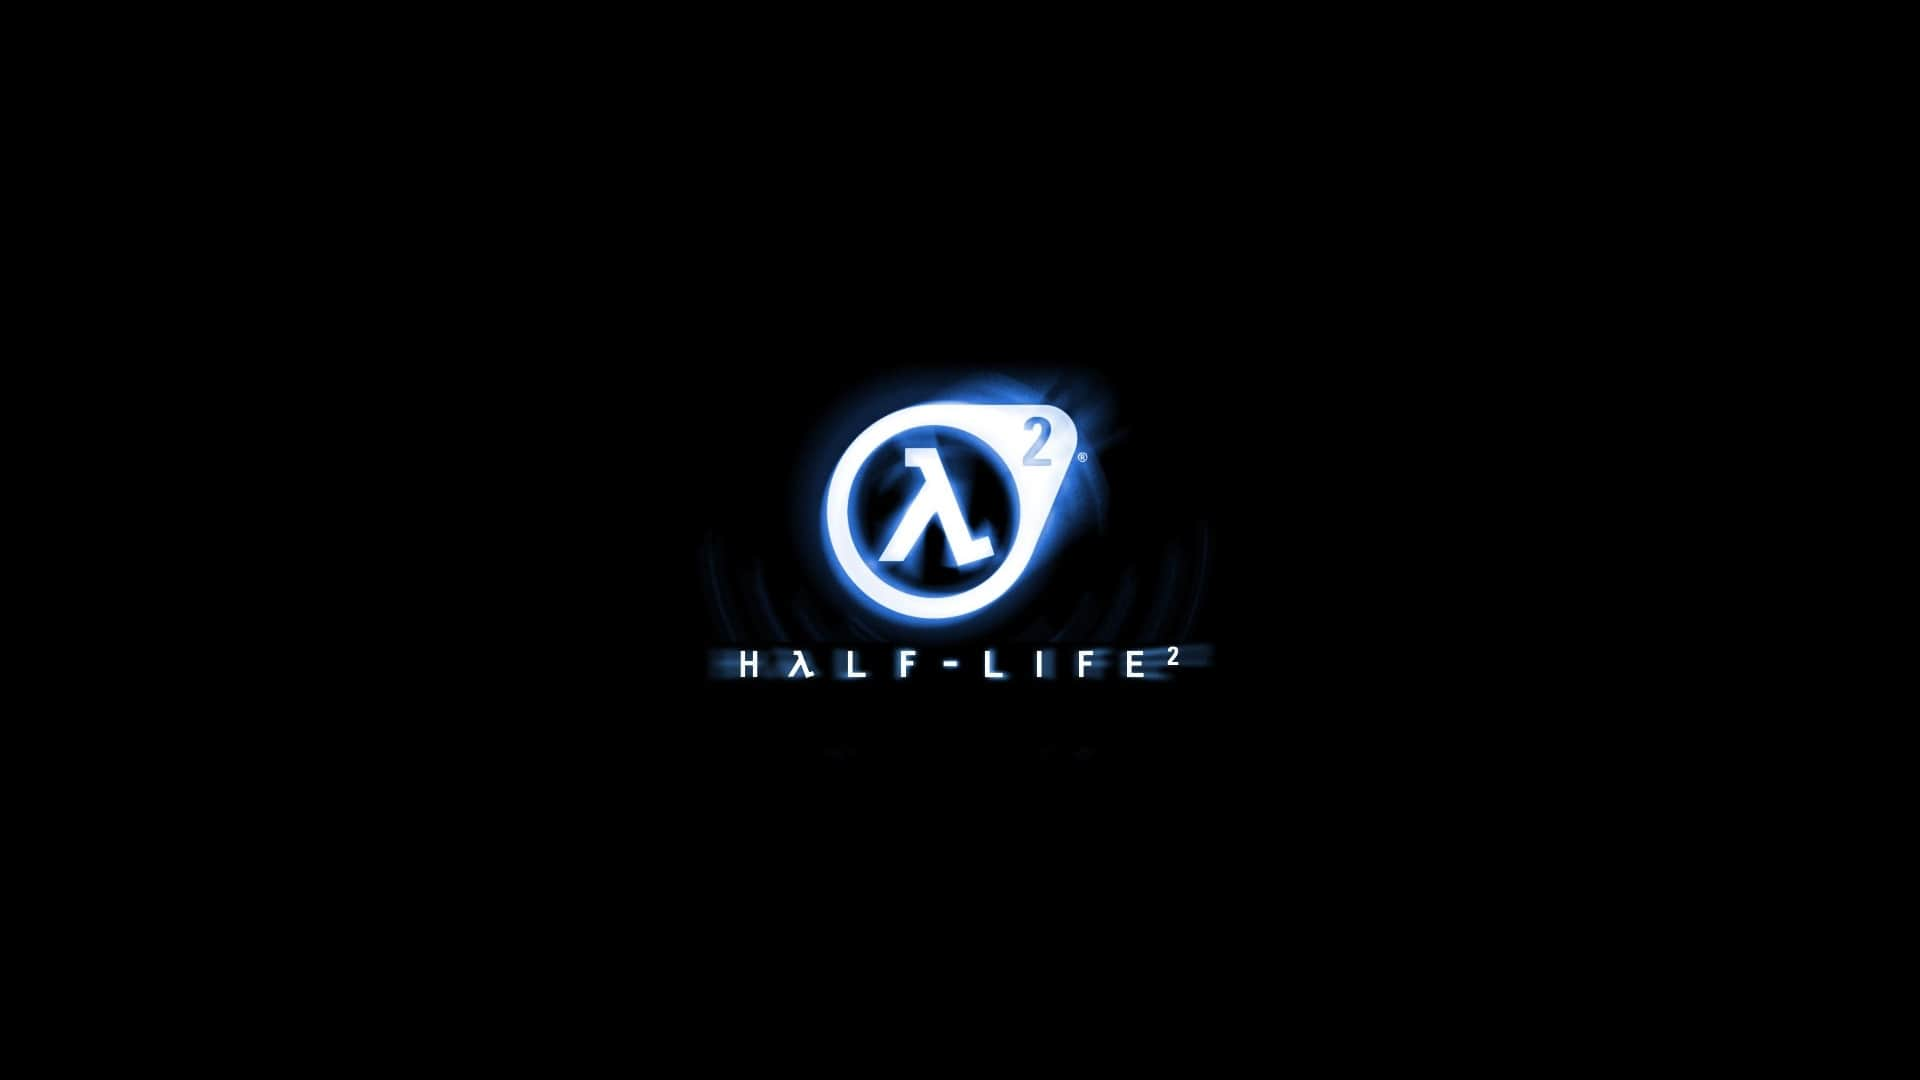 Half-Life 2 HD pictures